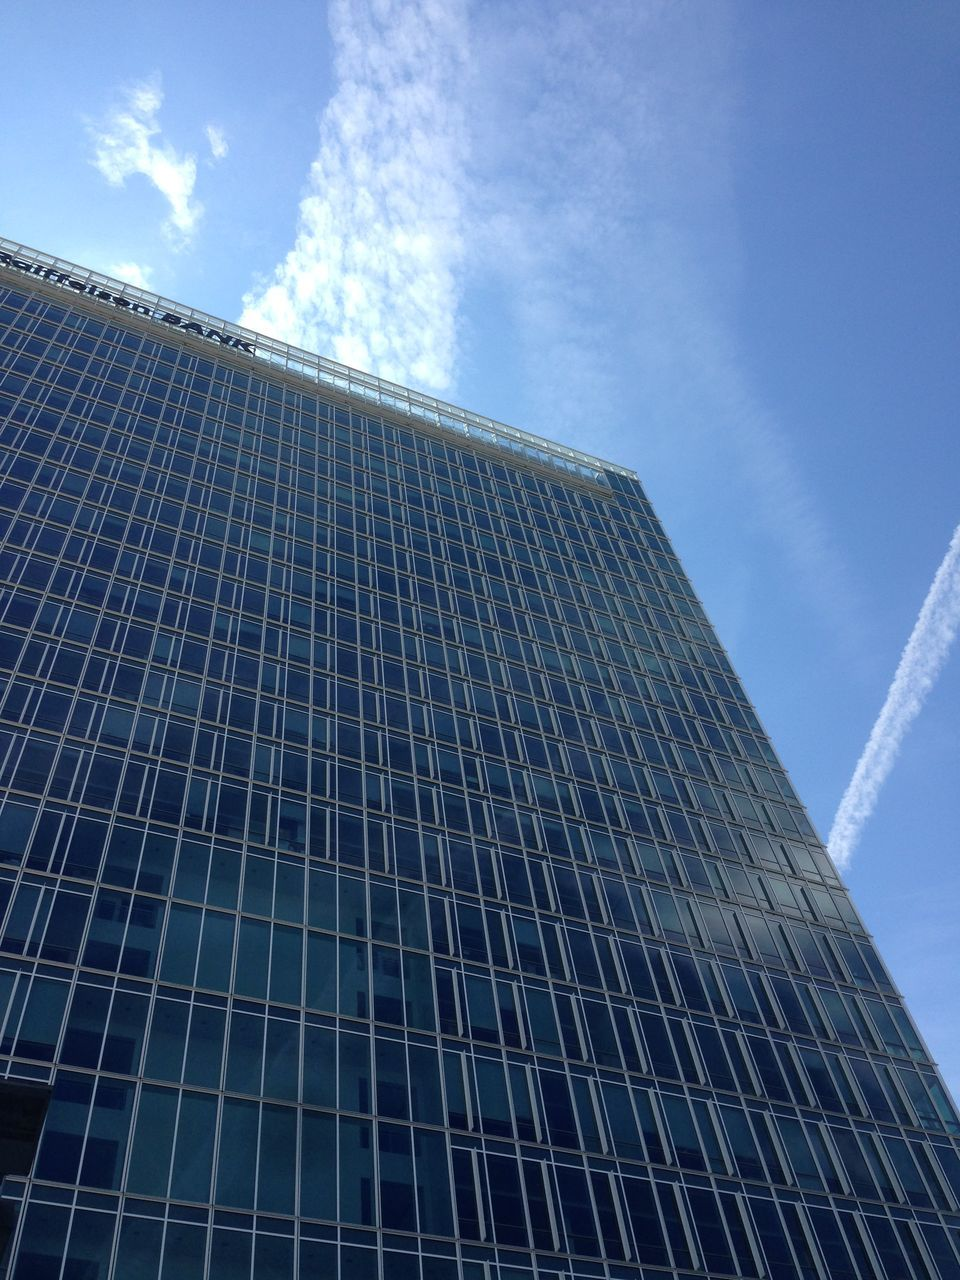 sky, modern, low angle view, architecture, skyscraper, growth, built structure, no people, tall, blue, building exterior, day, city, outdoors